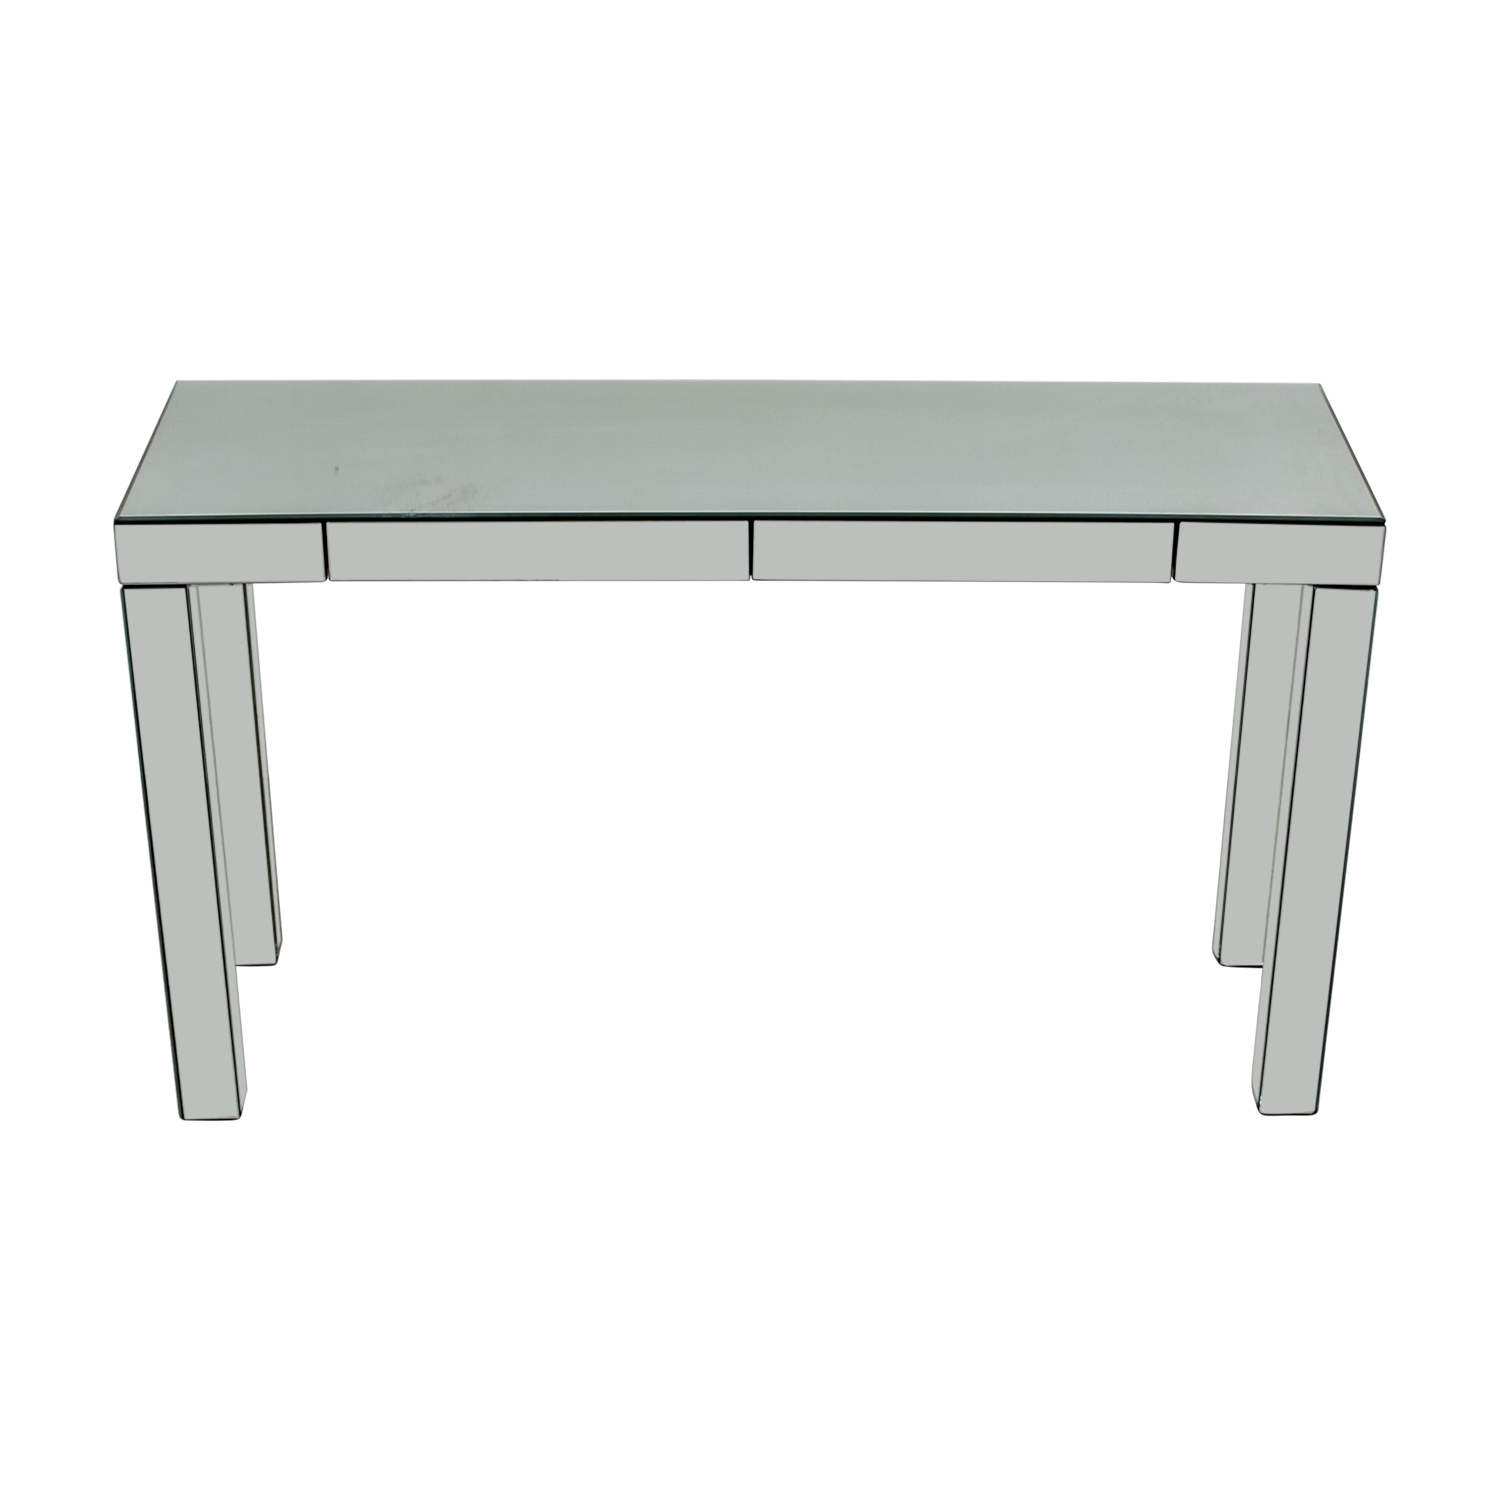 buy West Elm West Elm Parsons Mirrored Console online